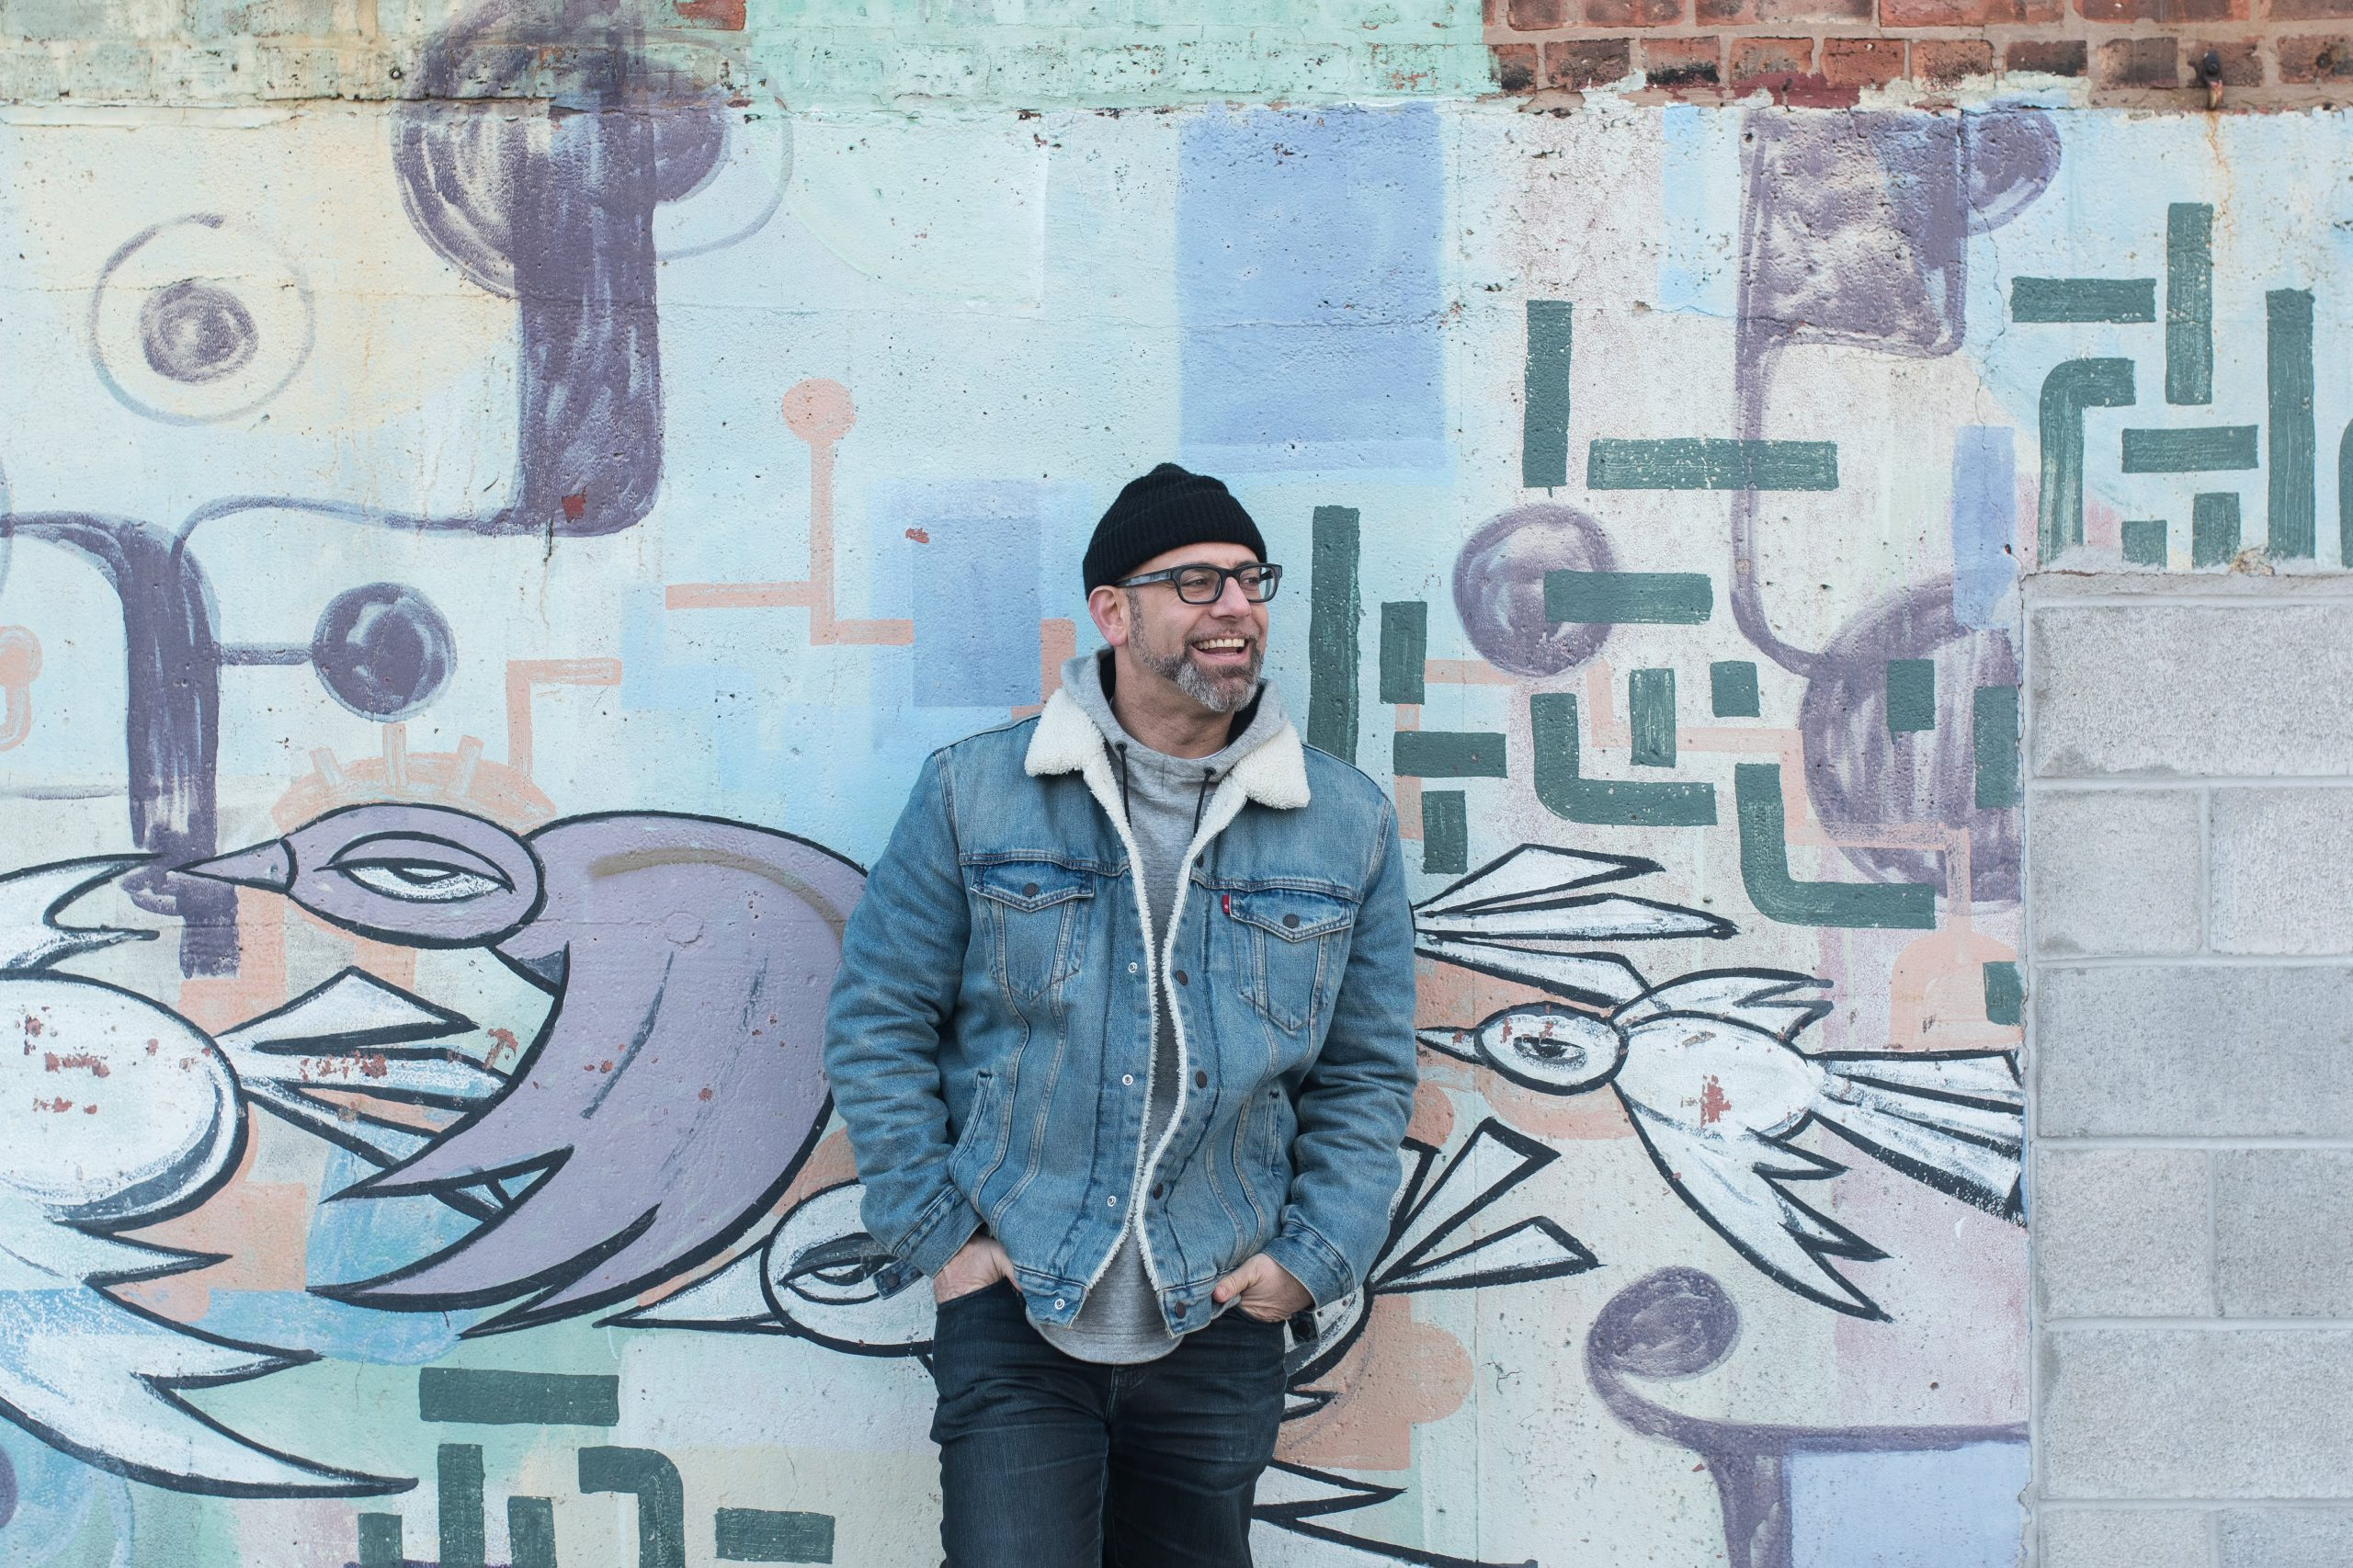 Poet and author Kevin Coval is one of two artists on the B side of <i>VFAC 004</i>, along with R&B singer Tasha.